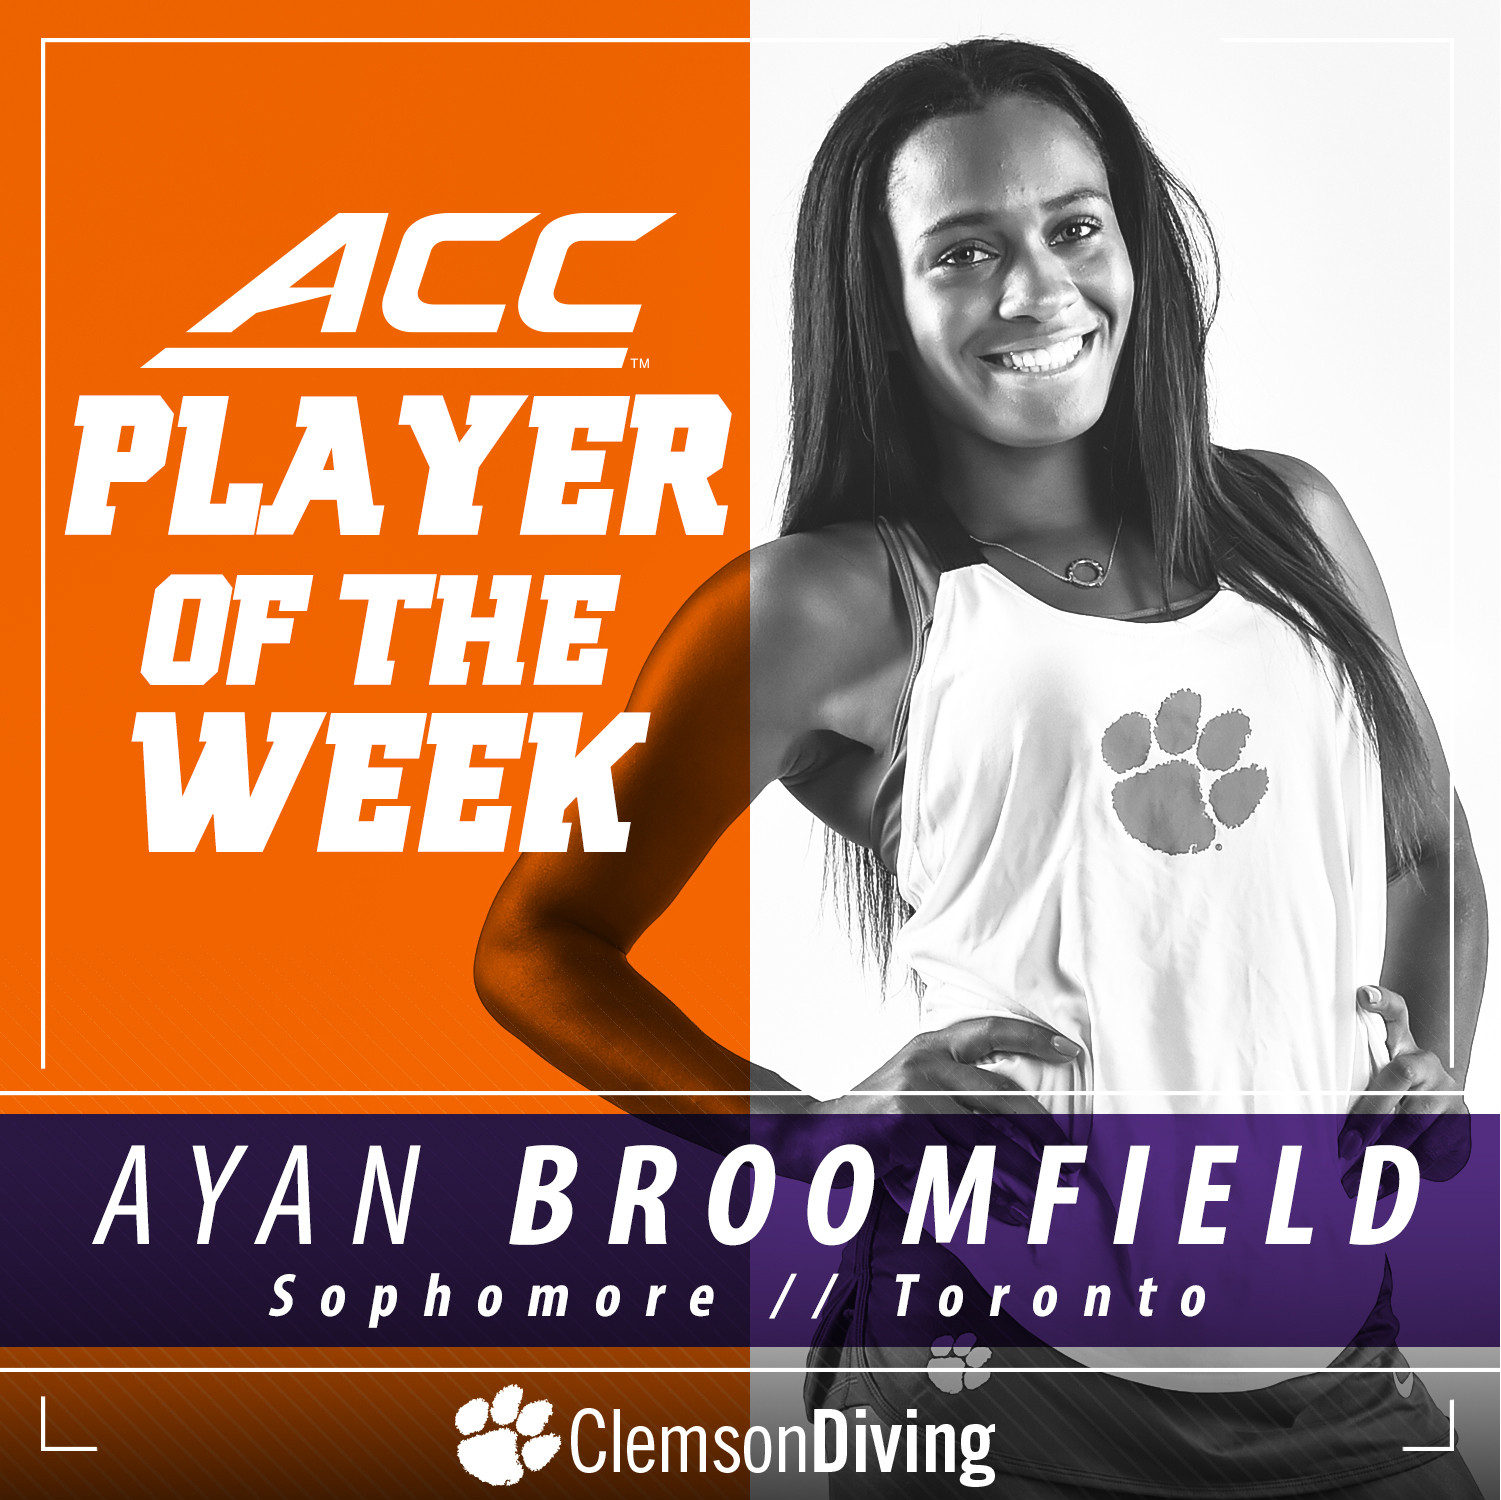 Broomfield Named ACC Player of the Week